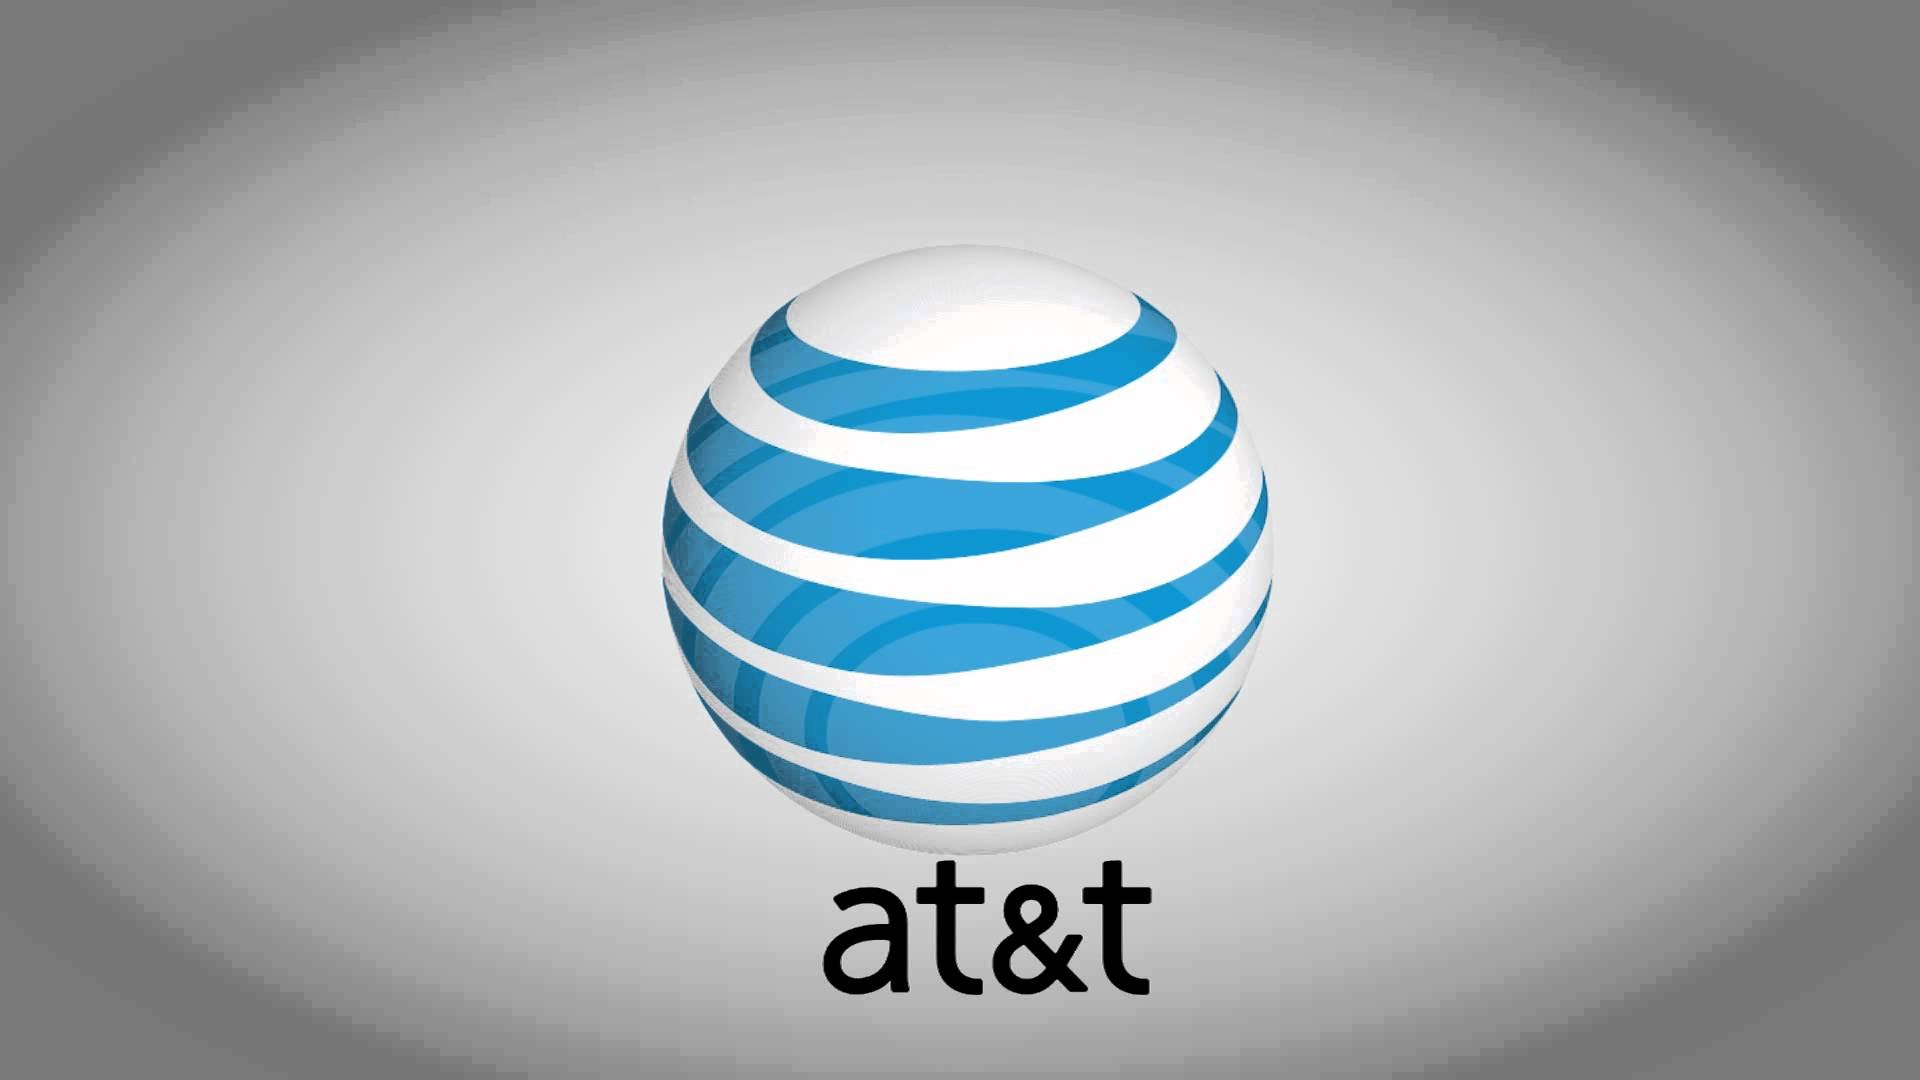 at&t png logo grey background #3355